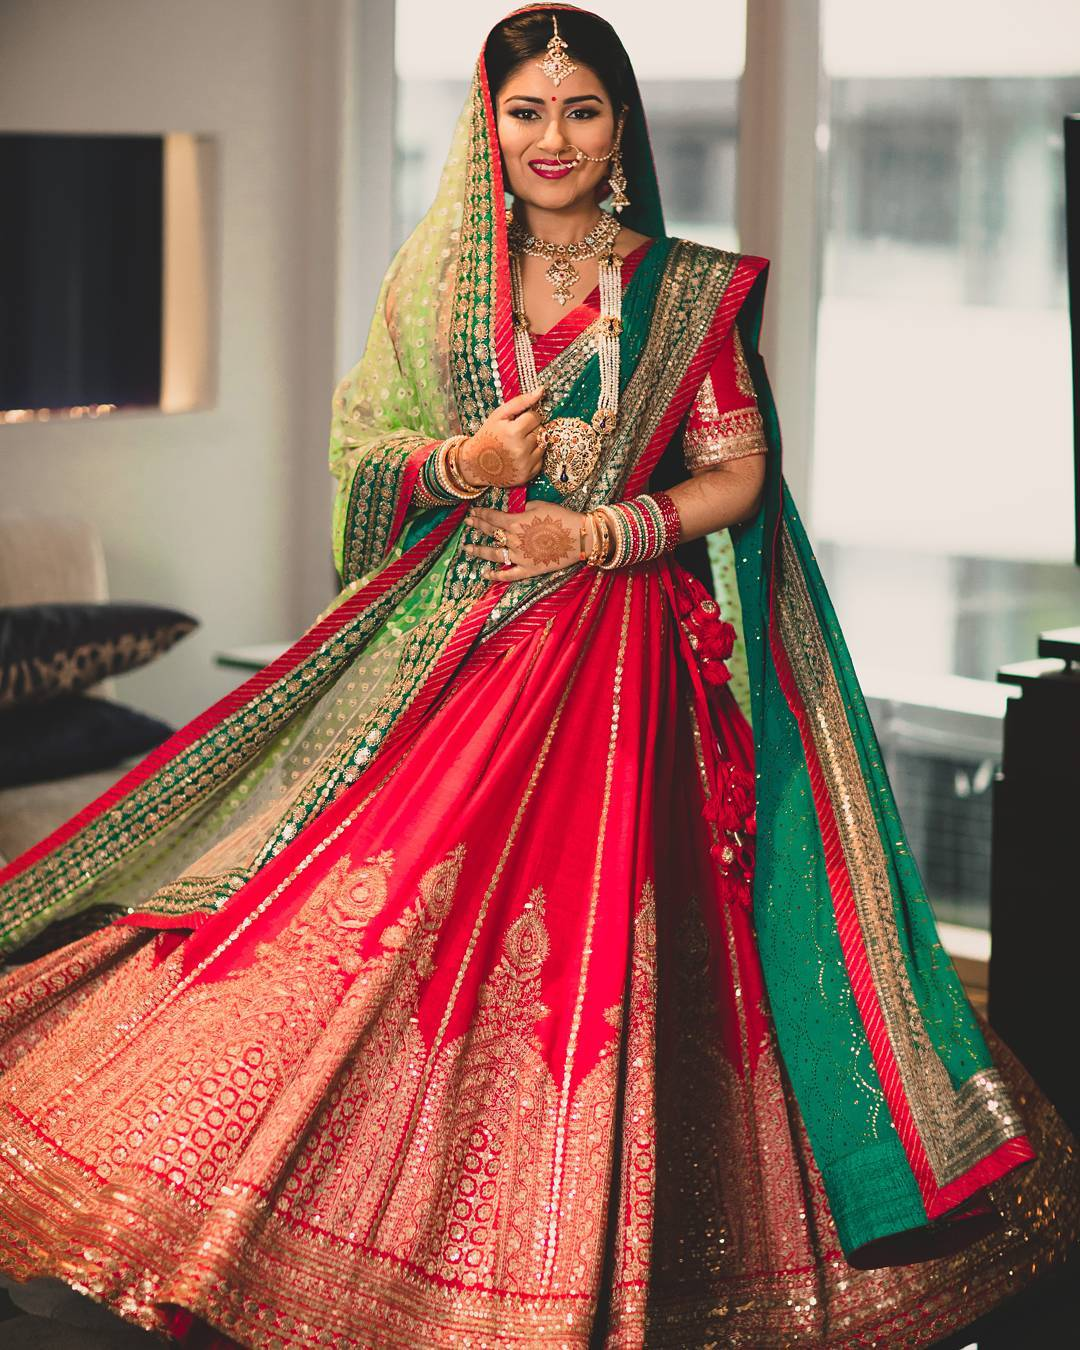 Divine in red and green Designer Bridal Lehengas for Indian Wedding